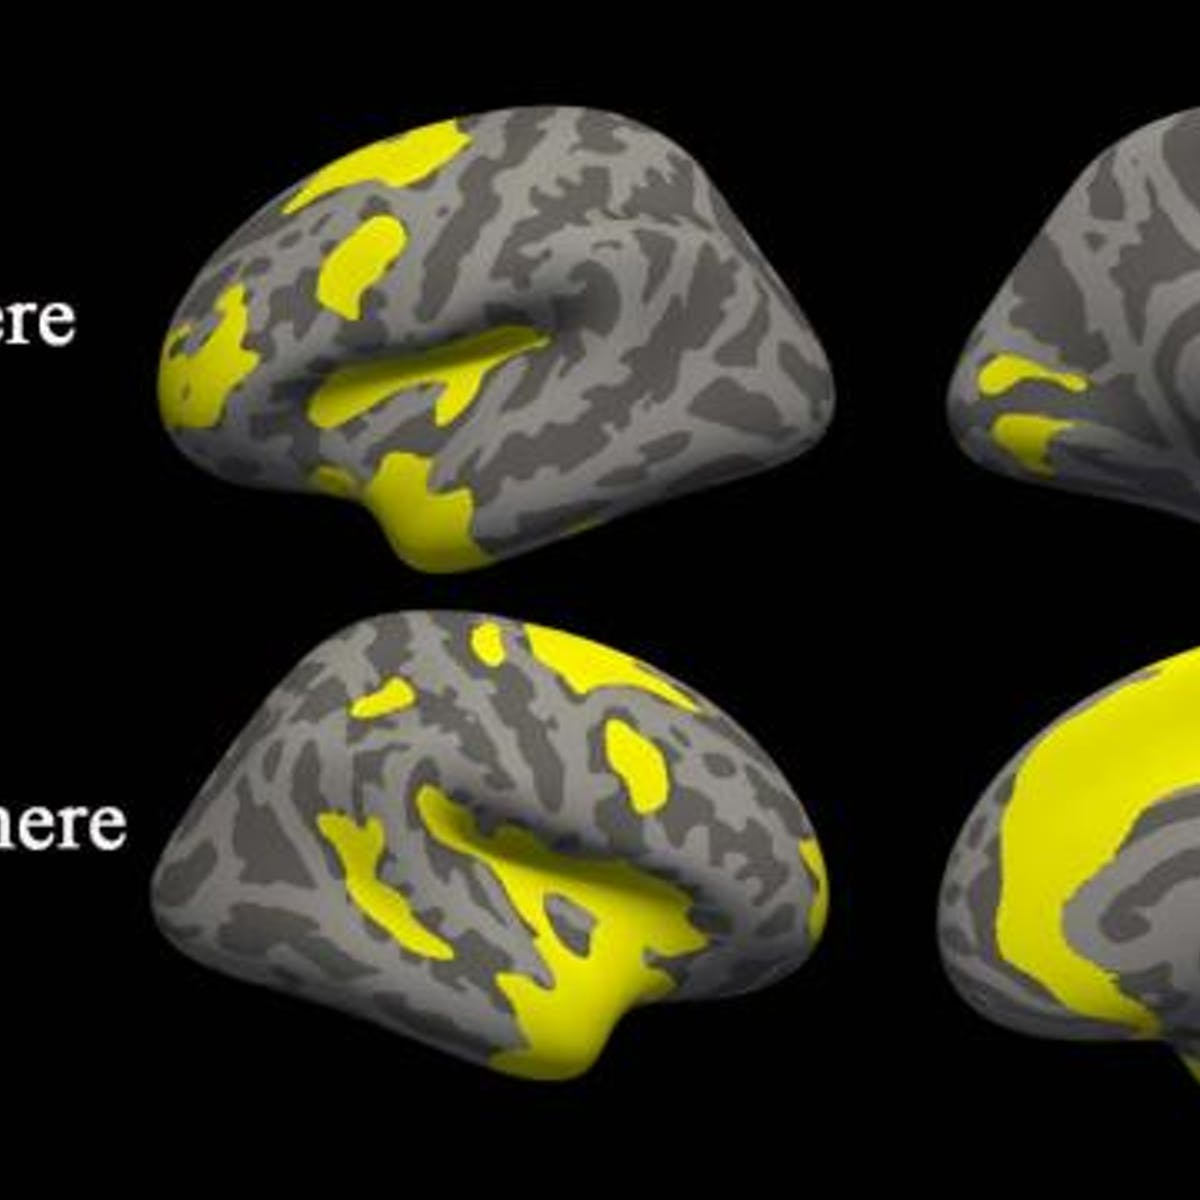 Anxiety and Depression Change Brain Structure In Similar Ways